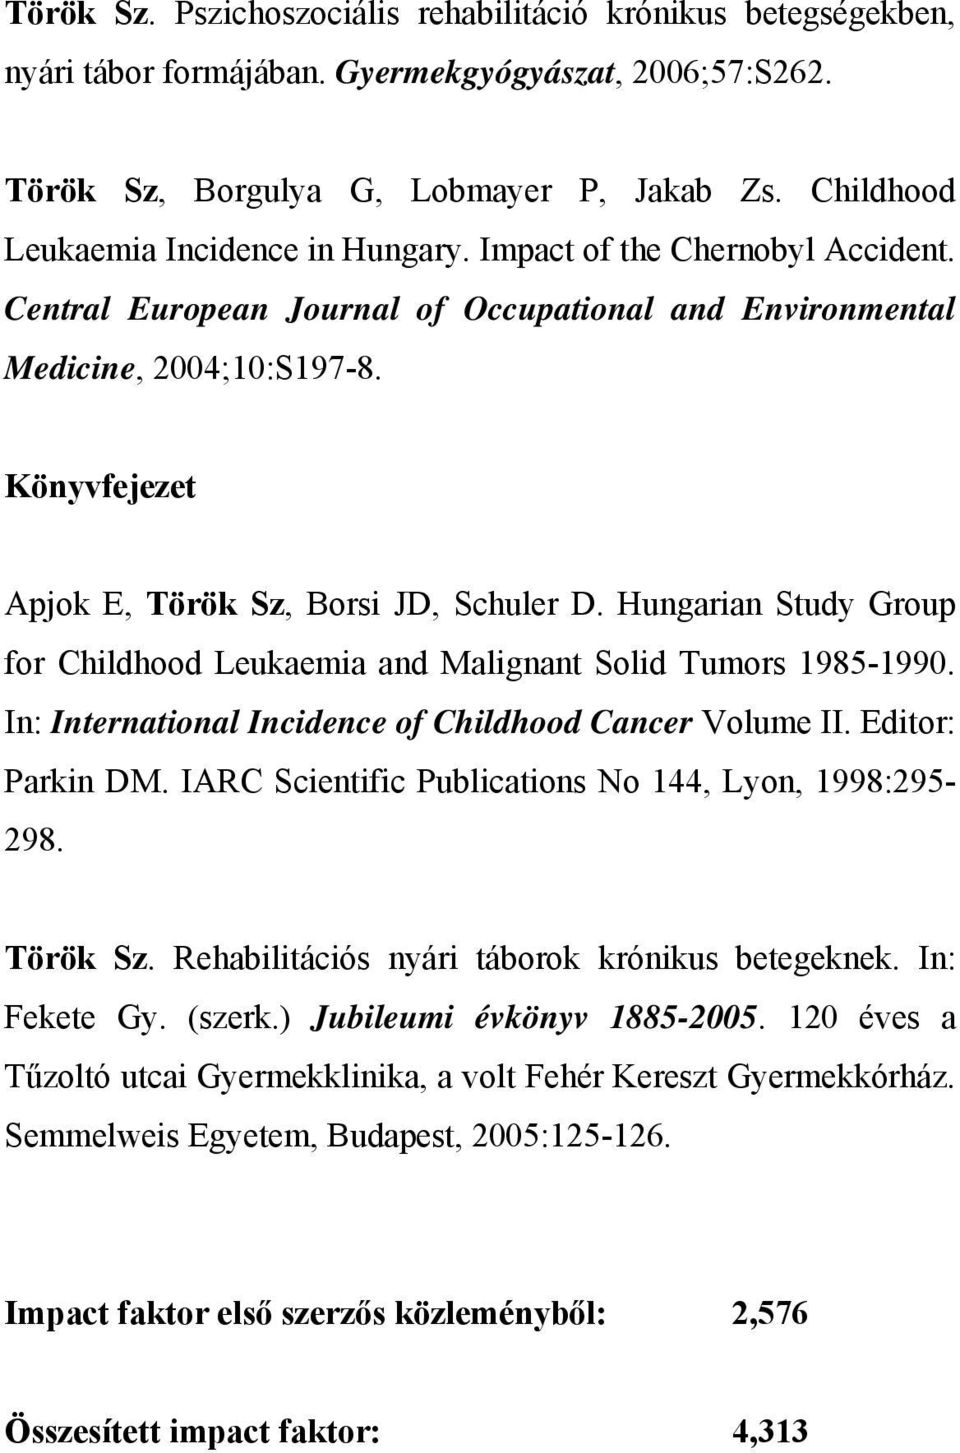 Könyvfejezet Apjok E, Török Sz, Borsi JD, Schuler D. Hungarian Study Group for Childhood Leukaemia and Malignant Solid Tumors 1985-1990. In: International Incidence of Childhood Cancer Volume II.